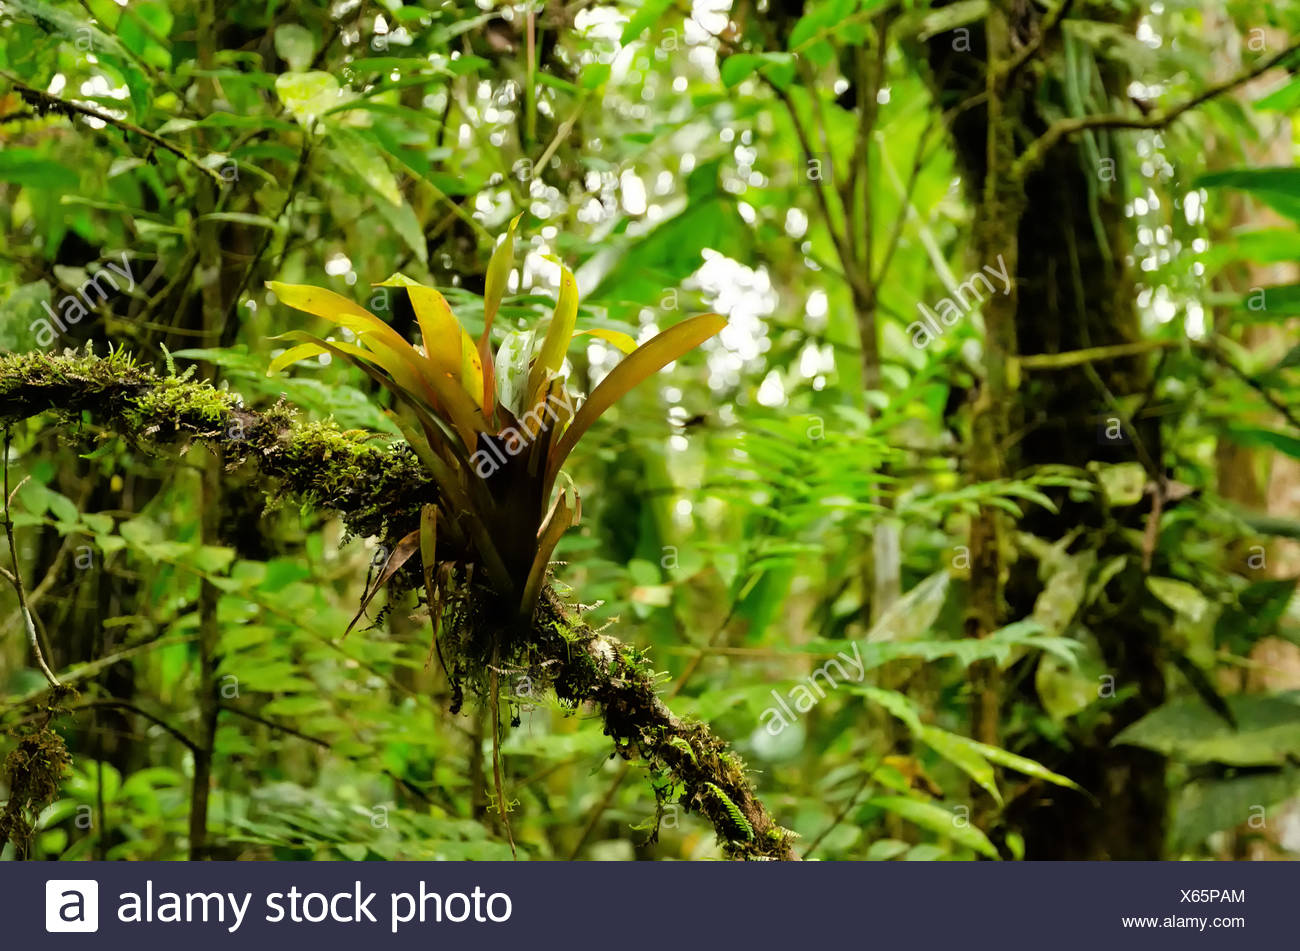 jungle - Stock Image